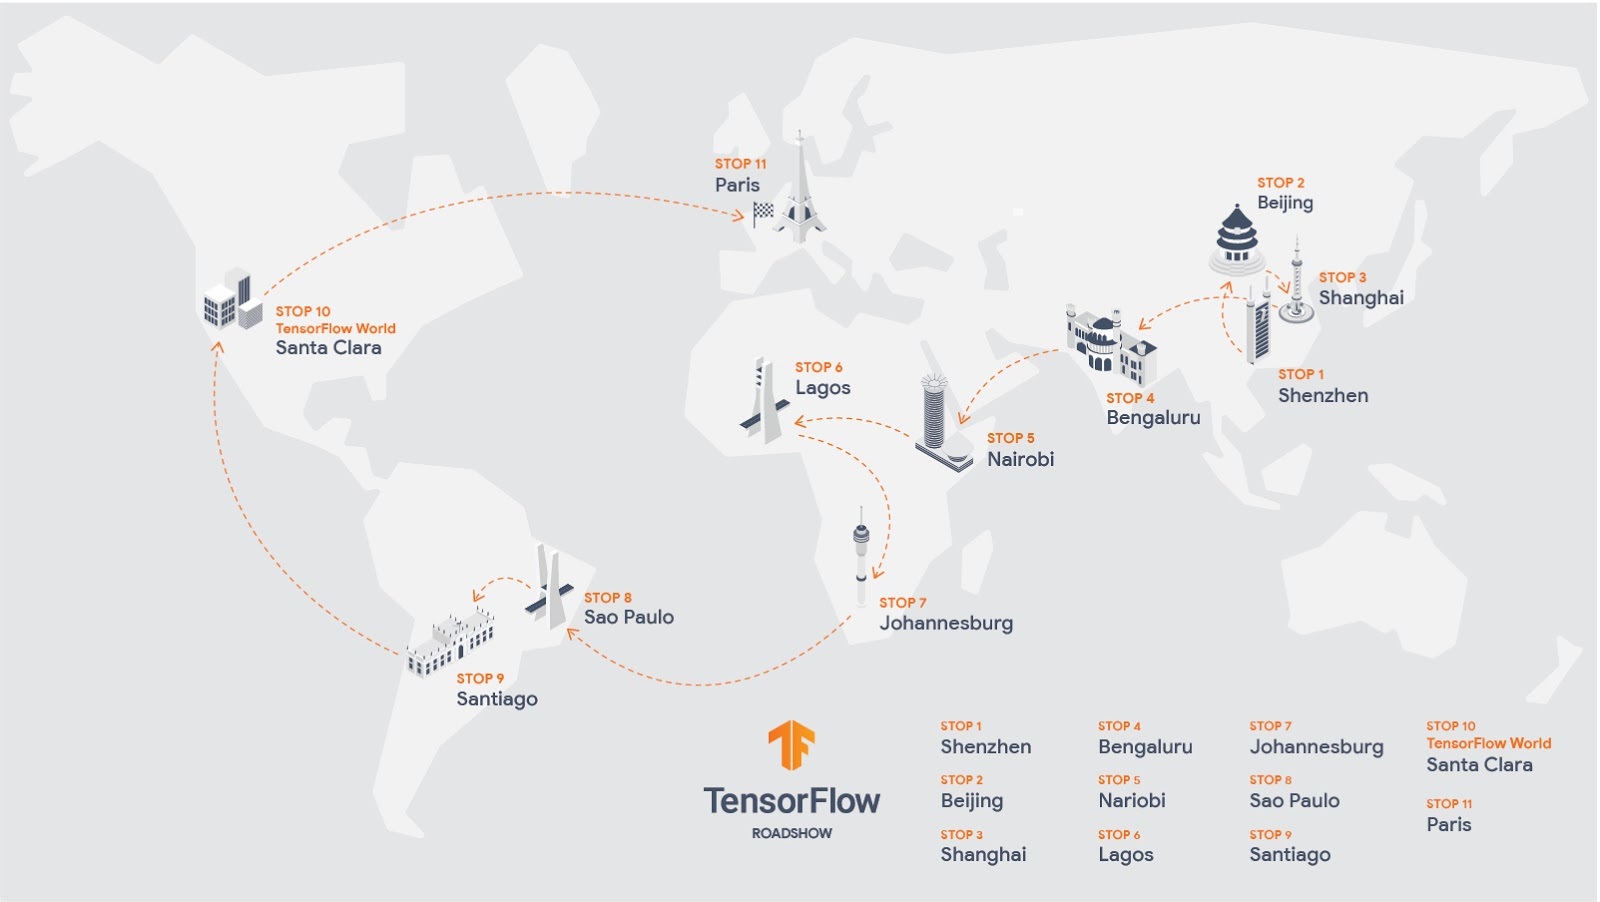 TensorFlow Road show map